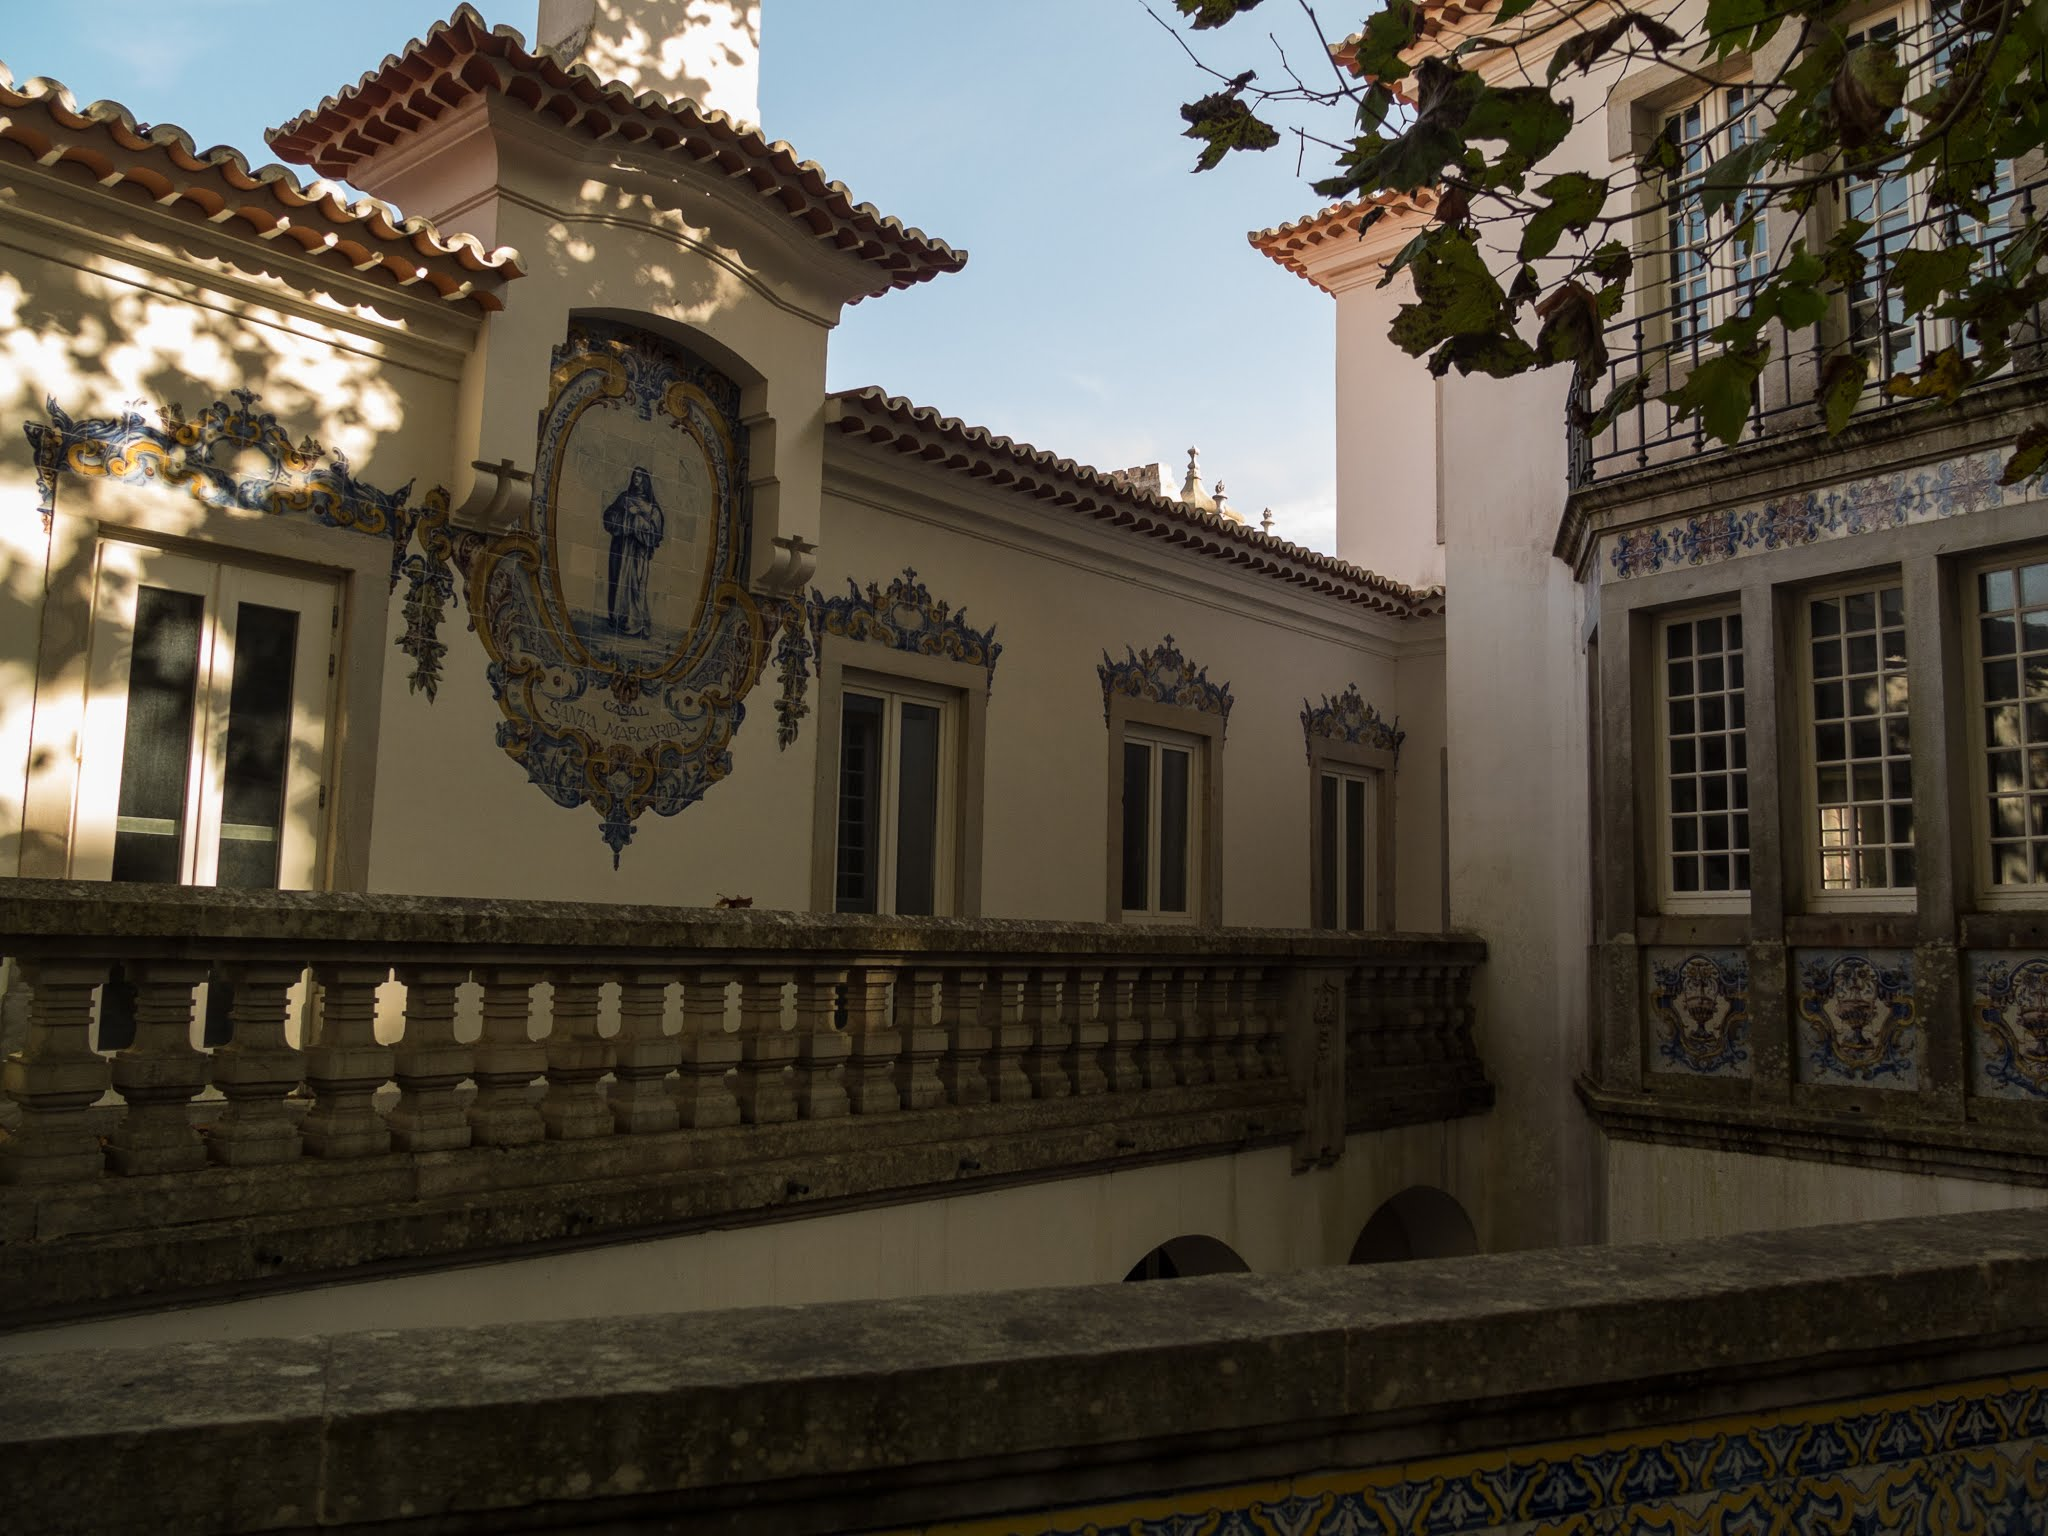 A tile decorated building in the shade in Sintra, Portugal.